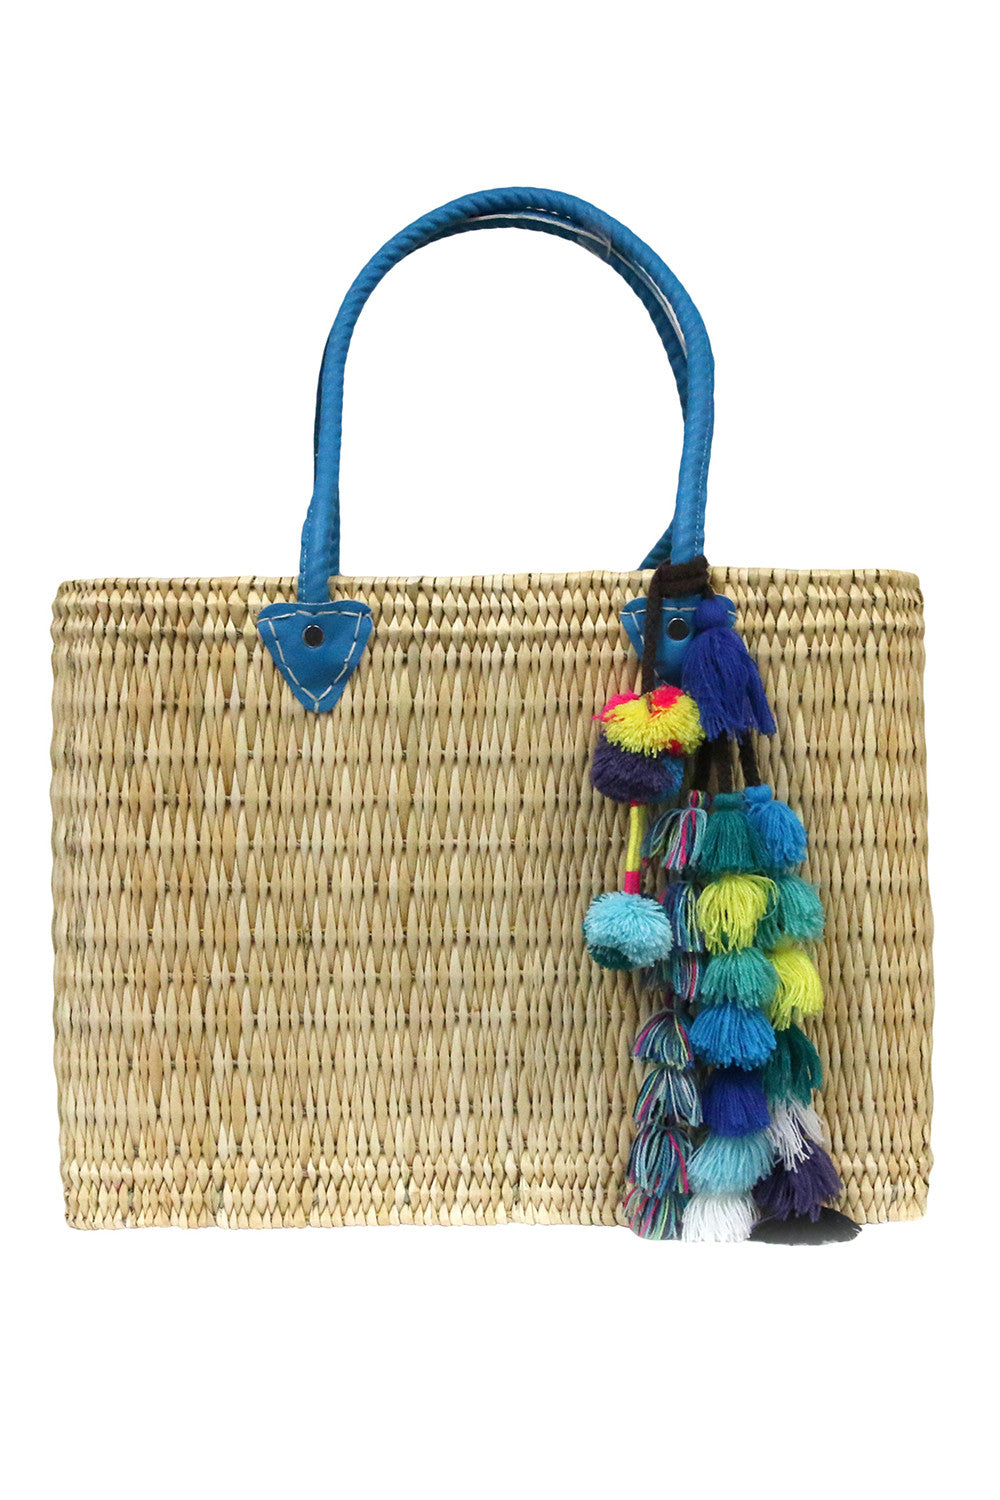 Jane Large Box Bag With Sayeh Pompom - MISA Los Angeles